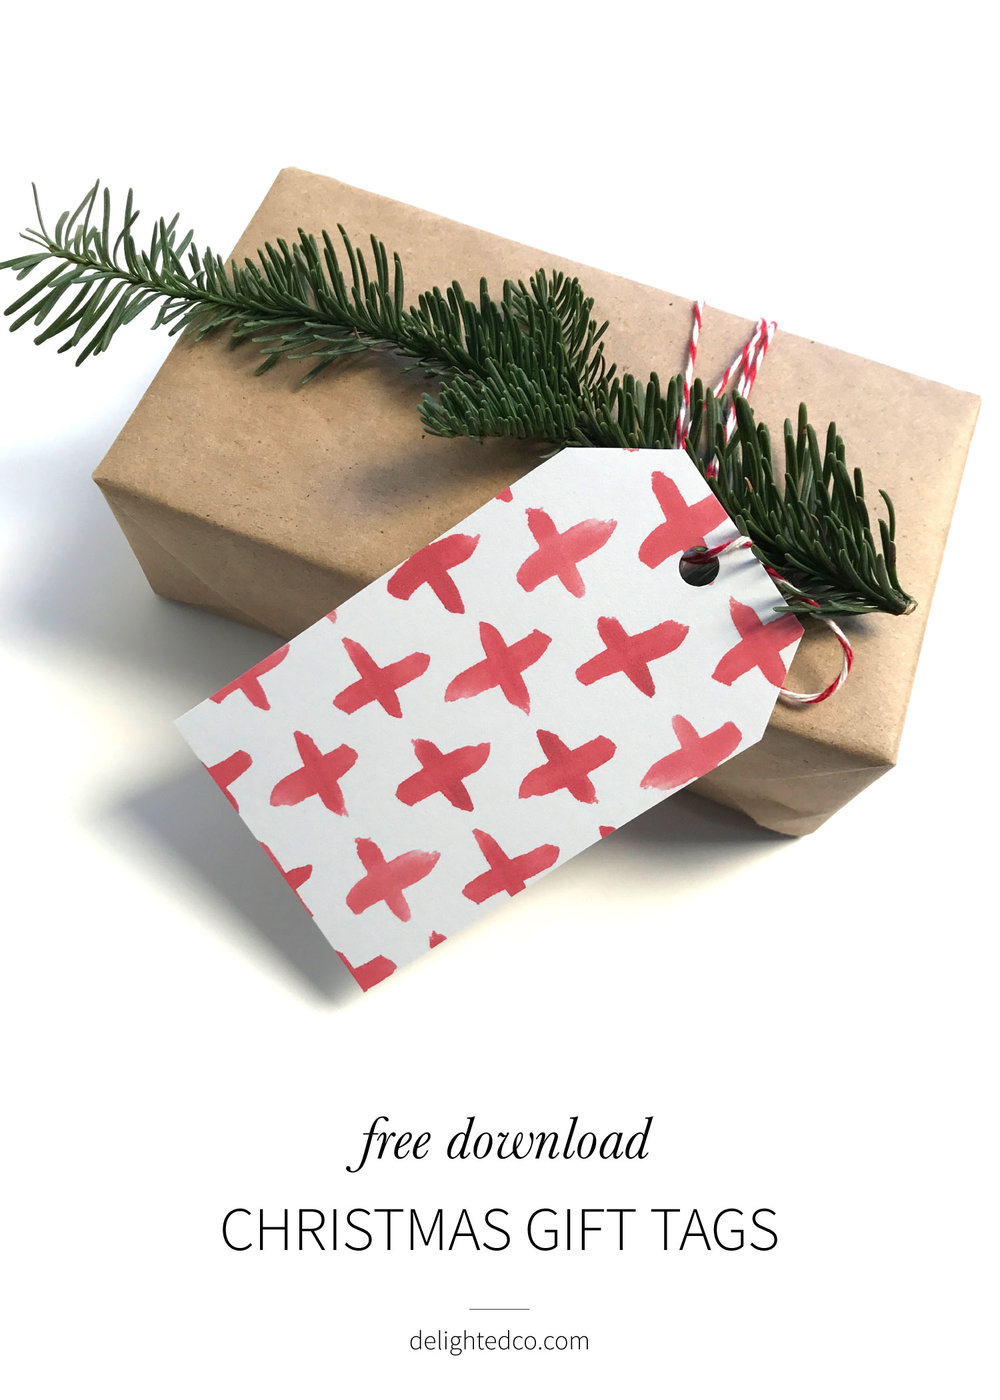 Free holiday Christmas gift tag download || delightedco.com